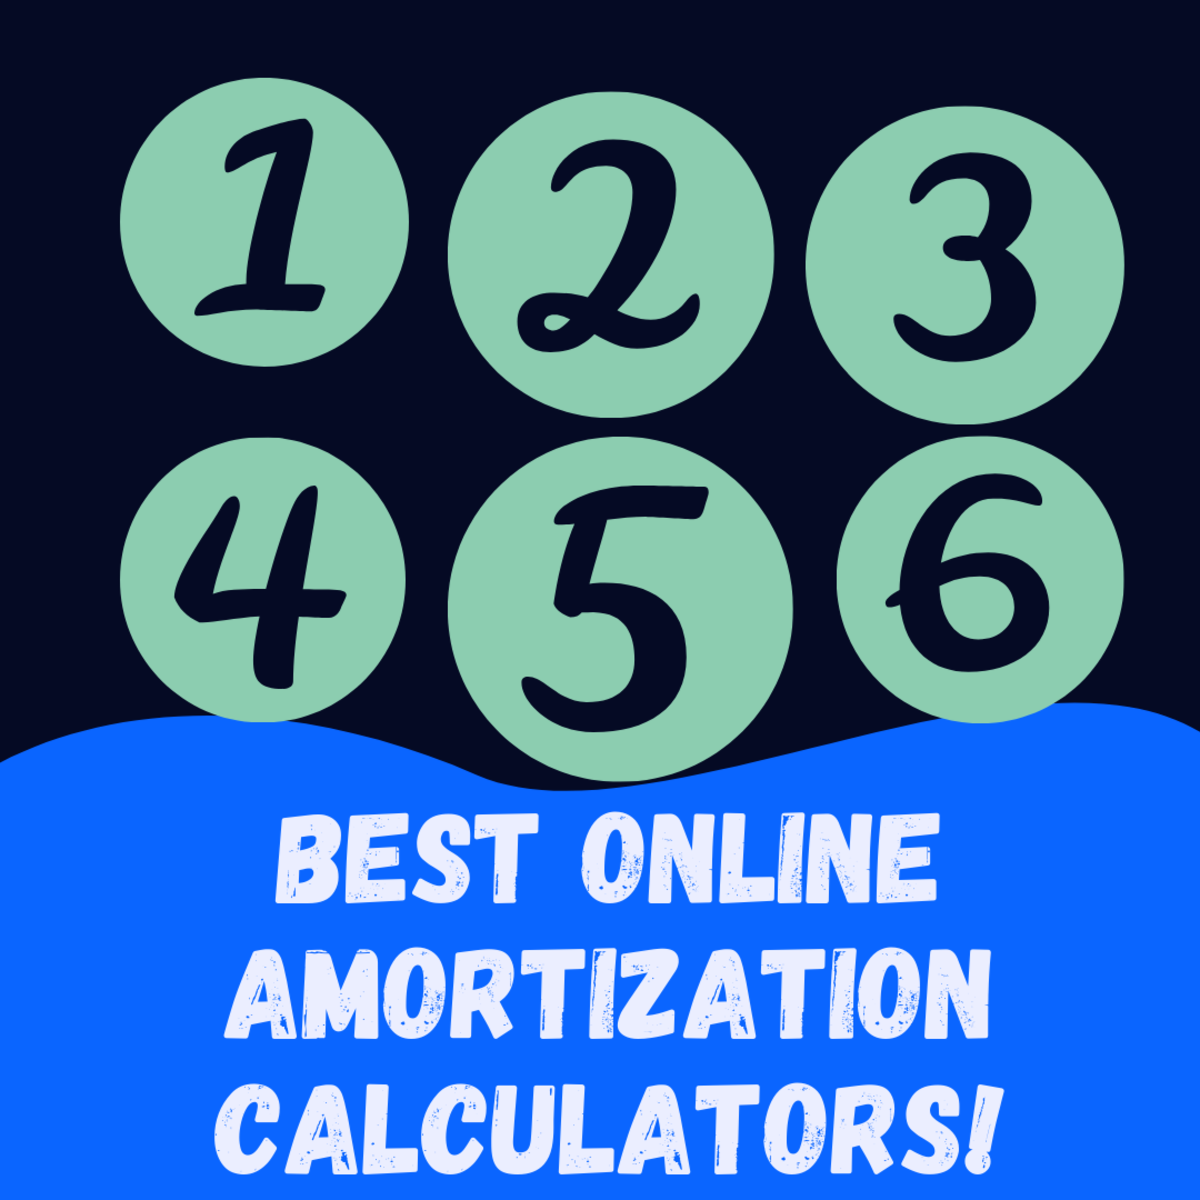 These calculators will get the job done right.